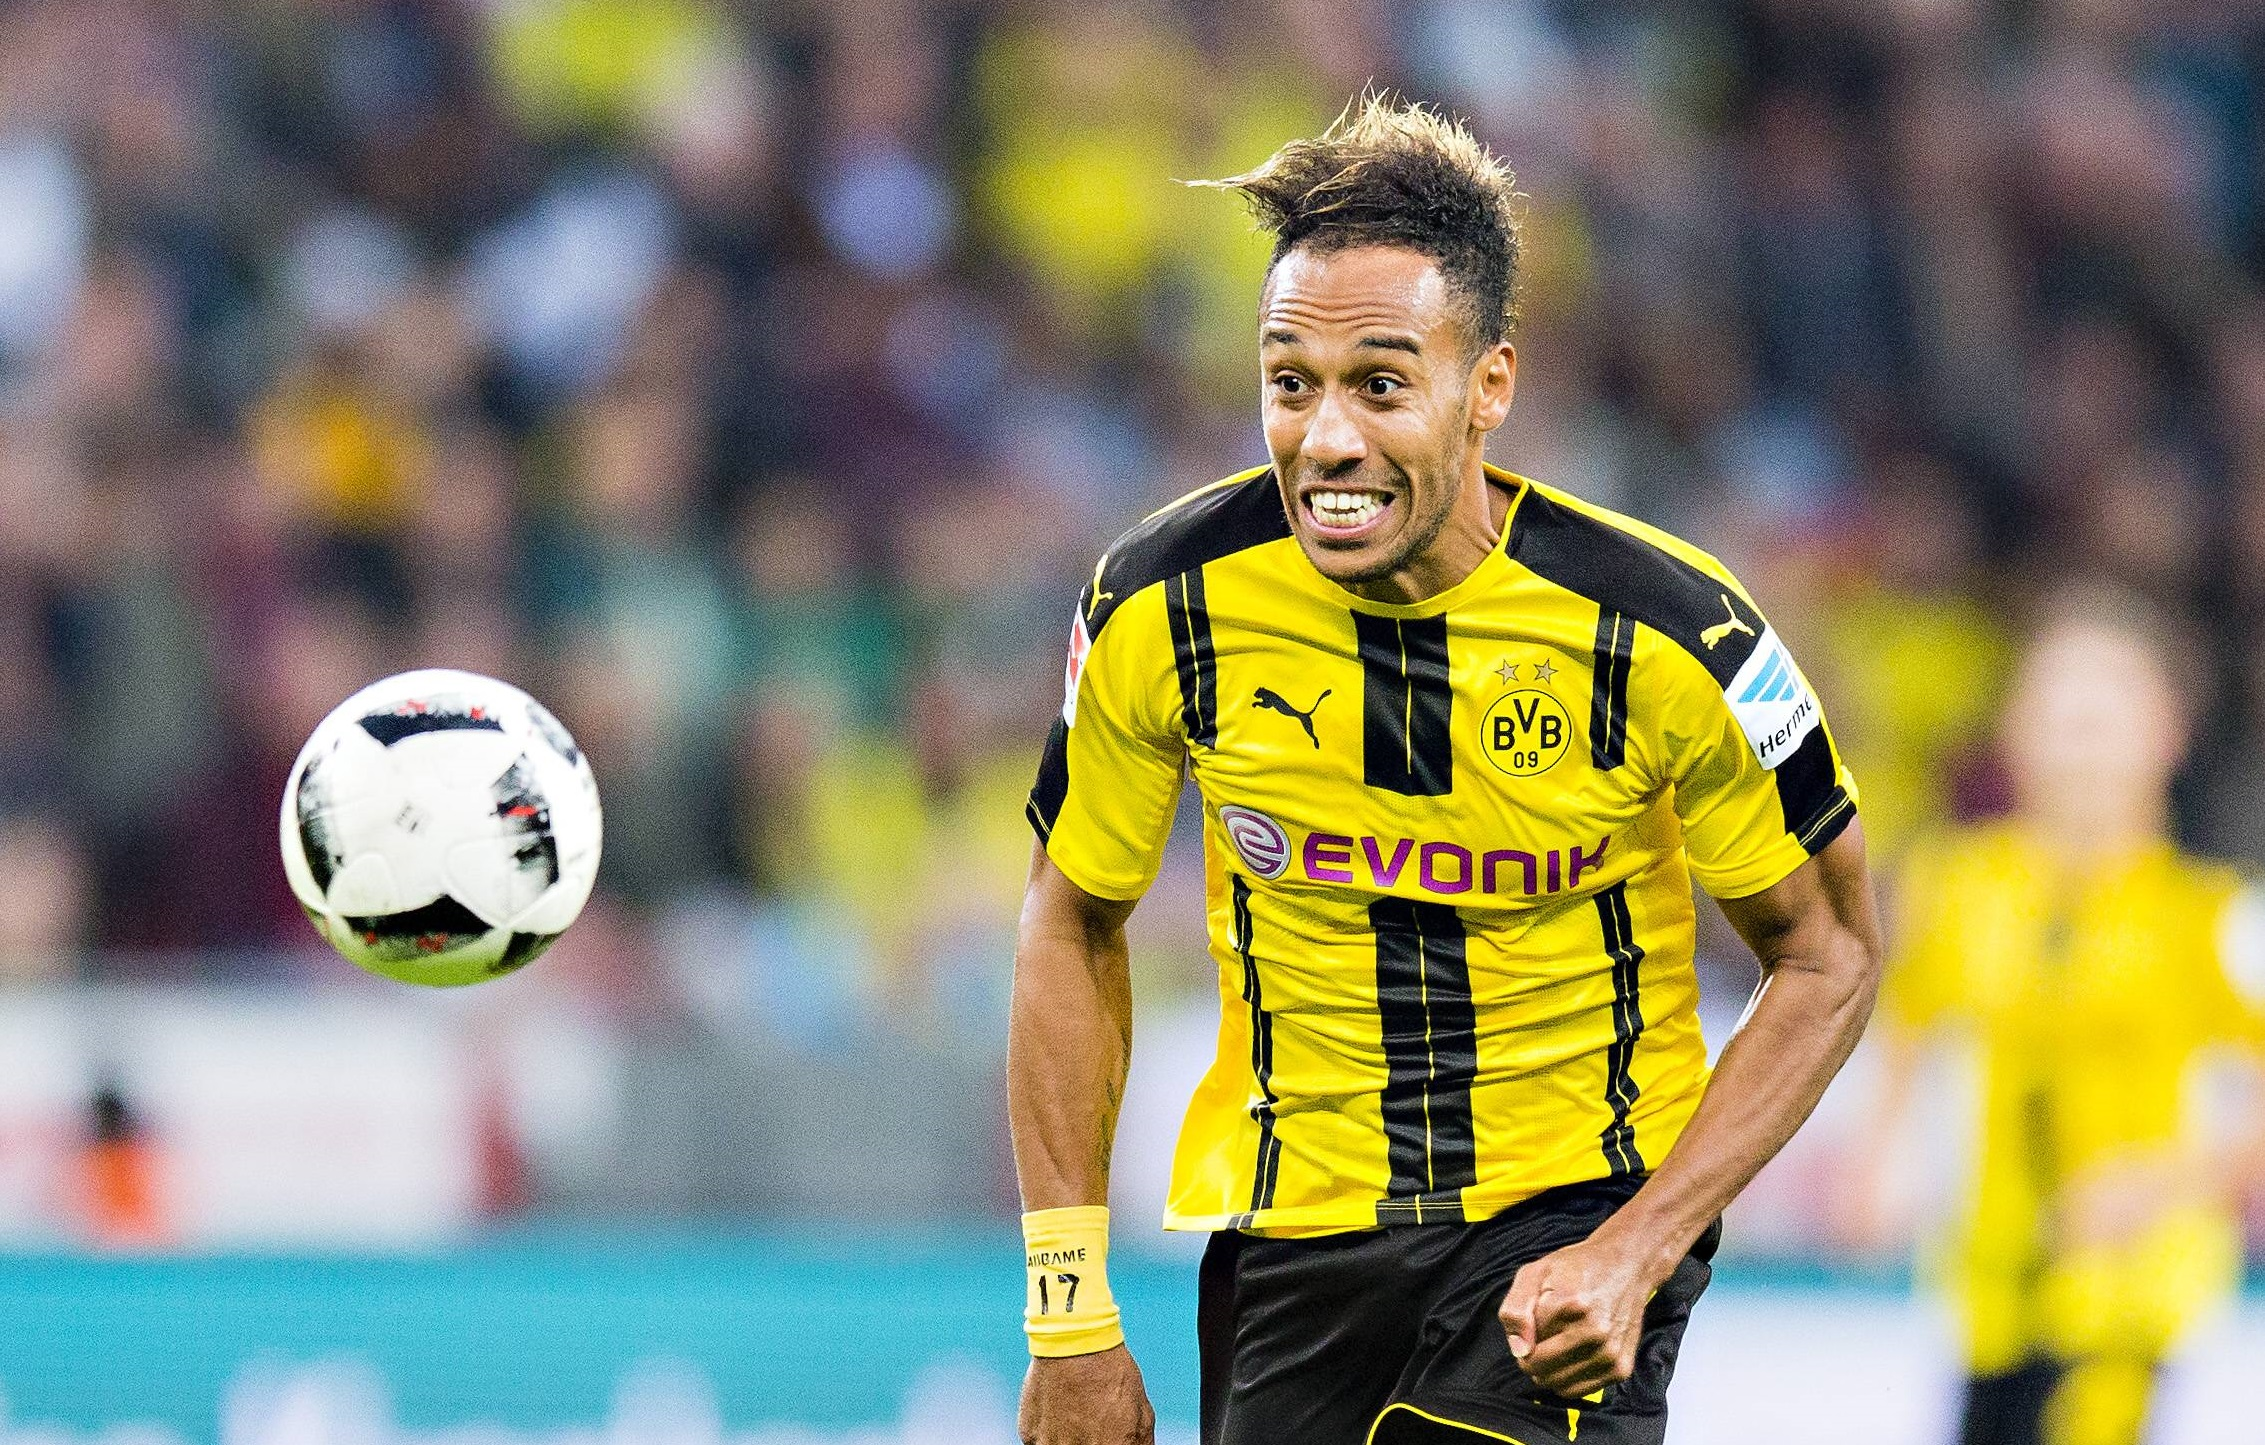 Football - Etranger - Borussia Dortmund-Hertha Berlin en DIRECT